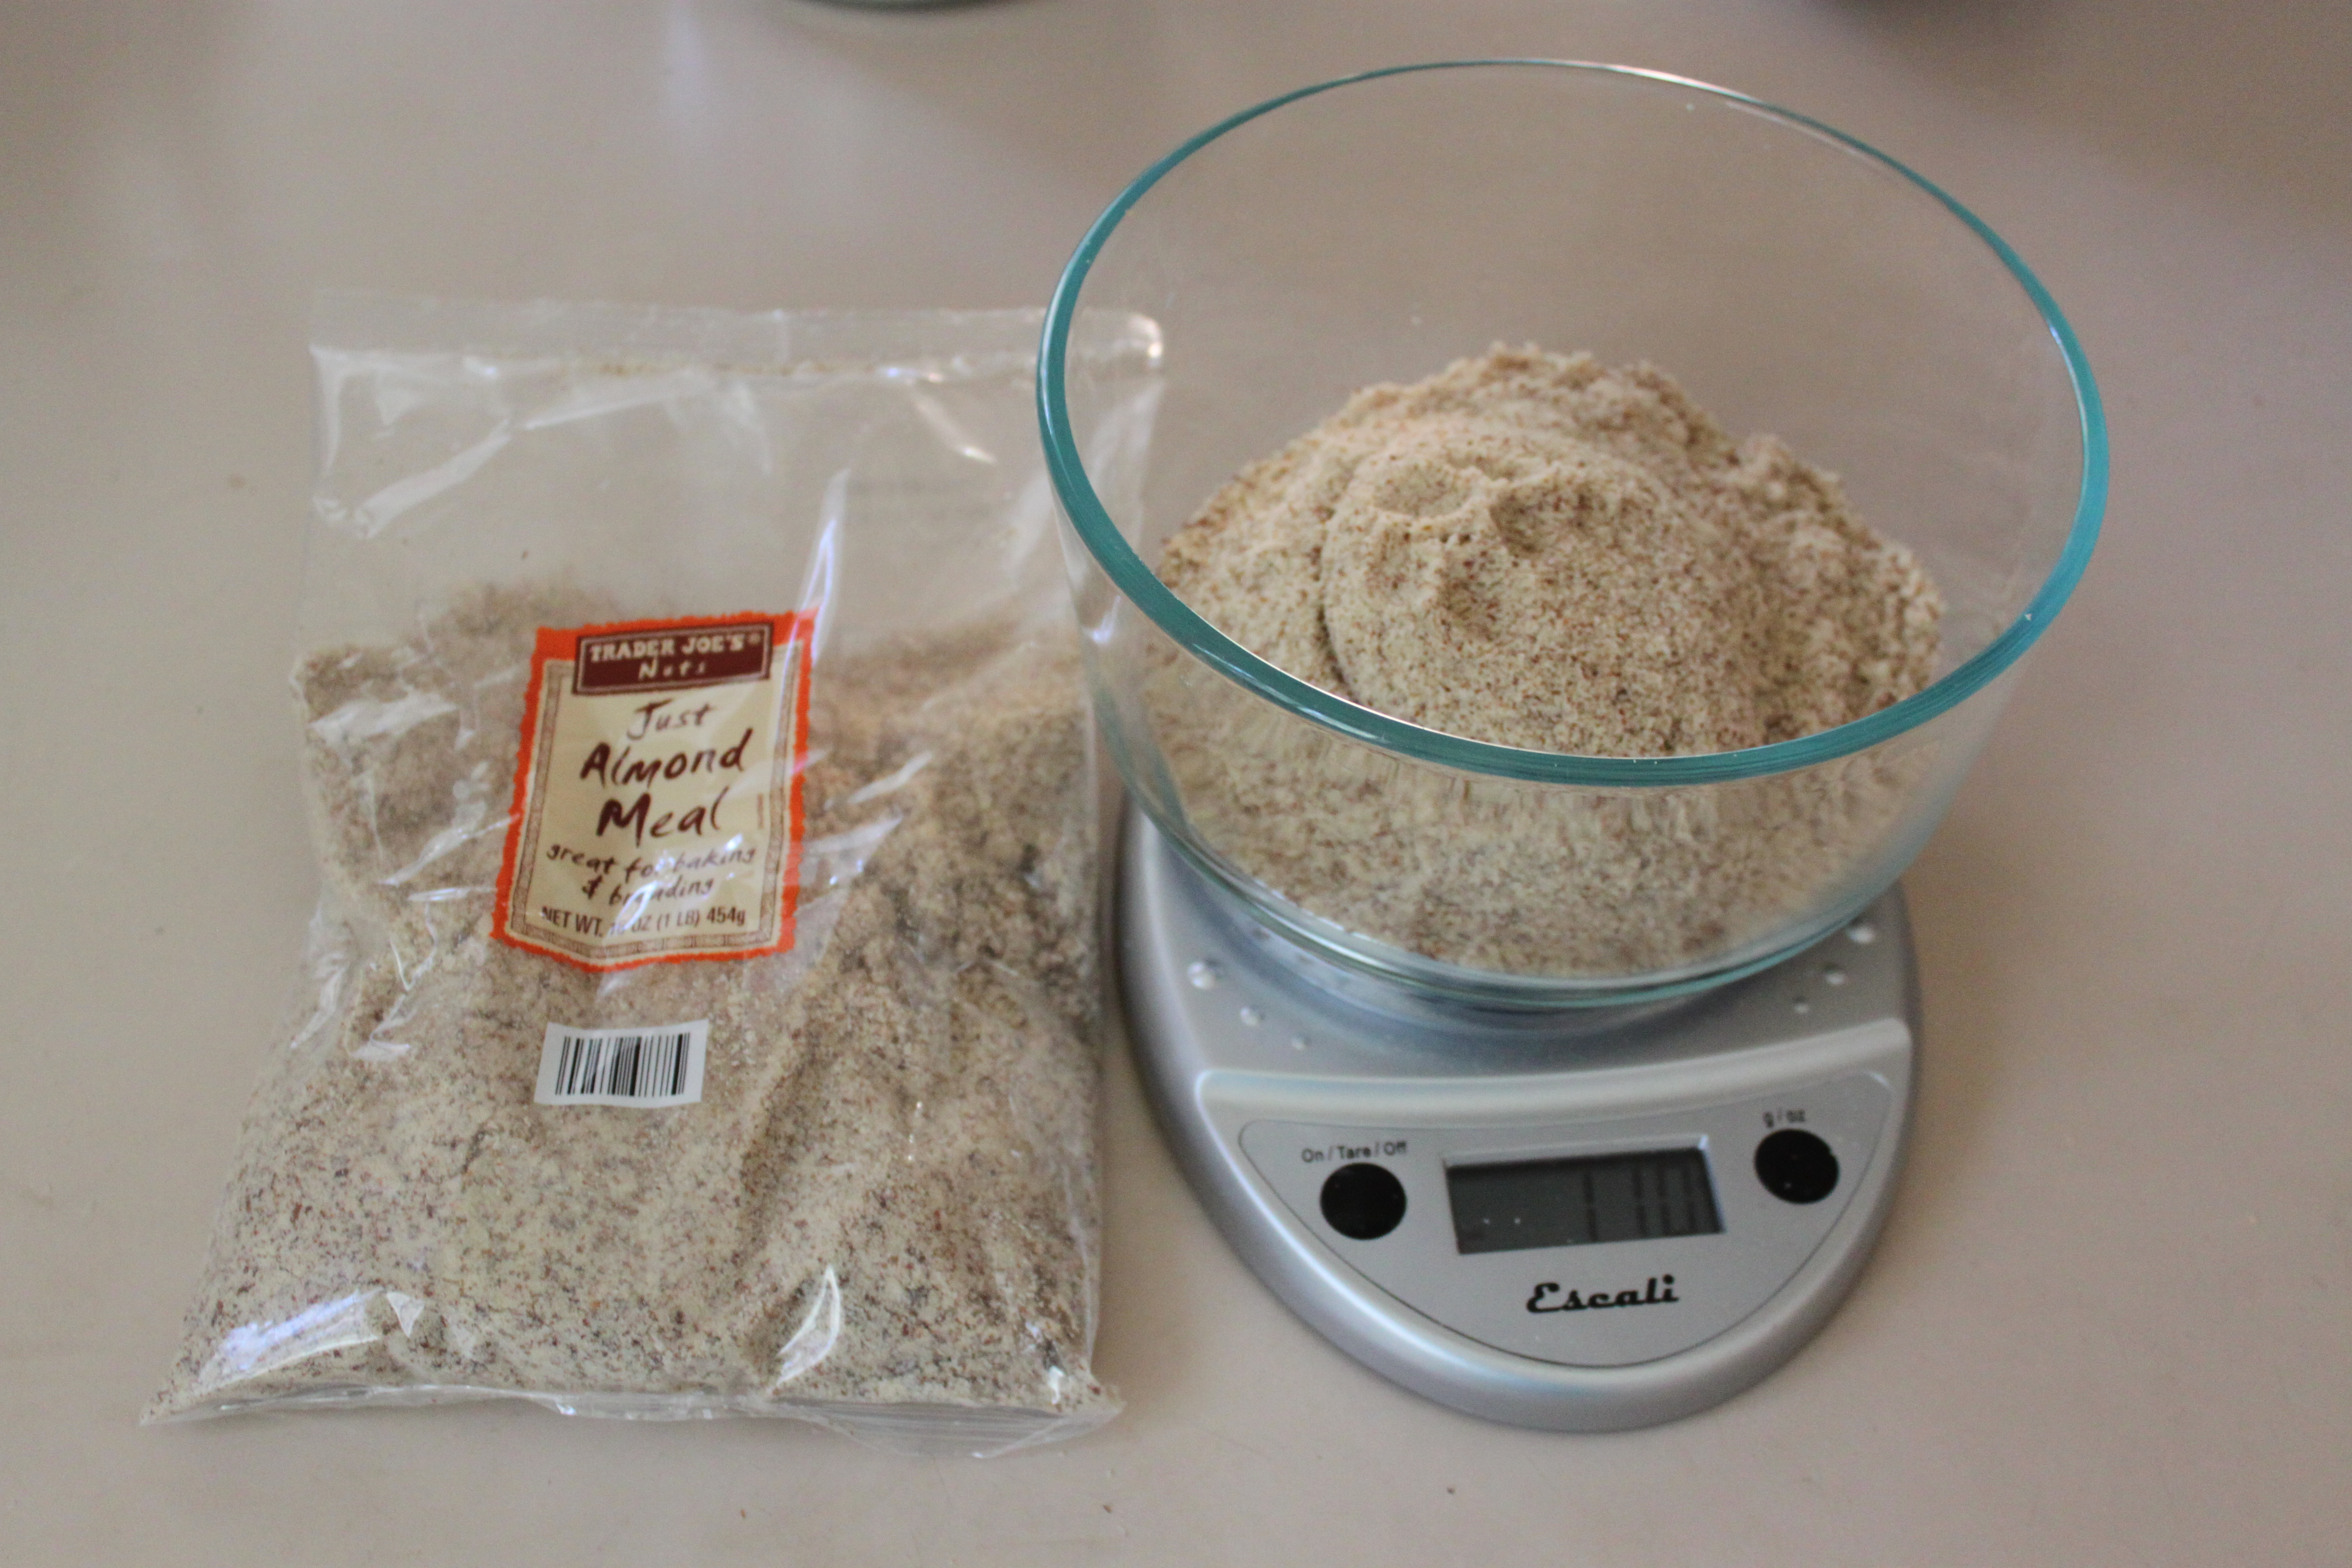 Weigh almond meal